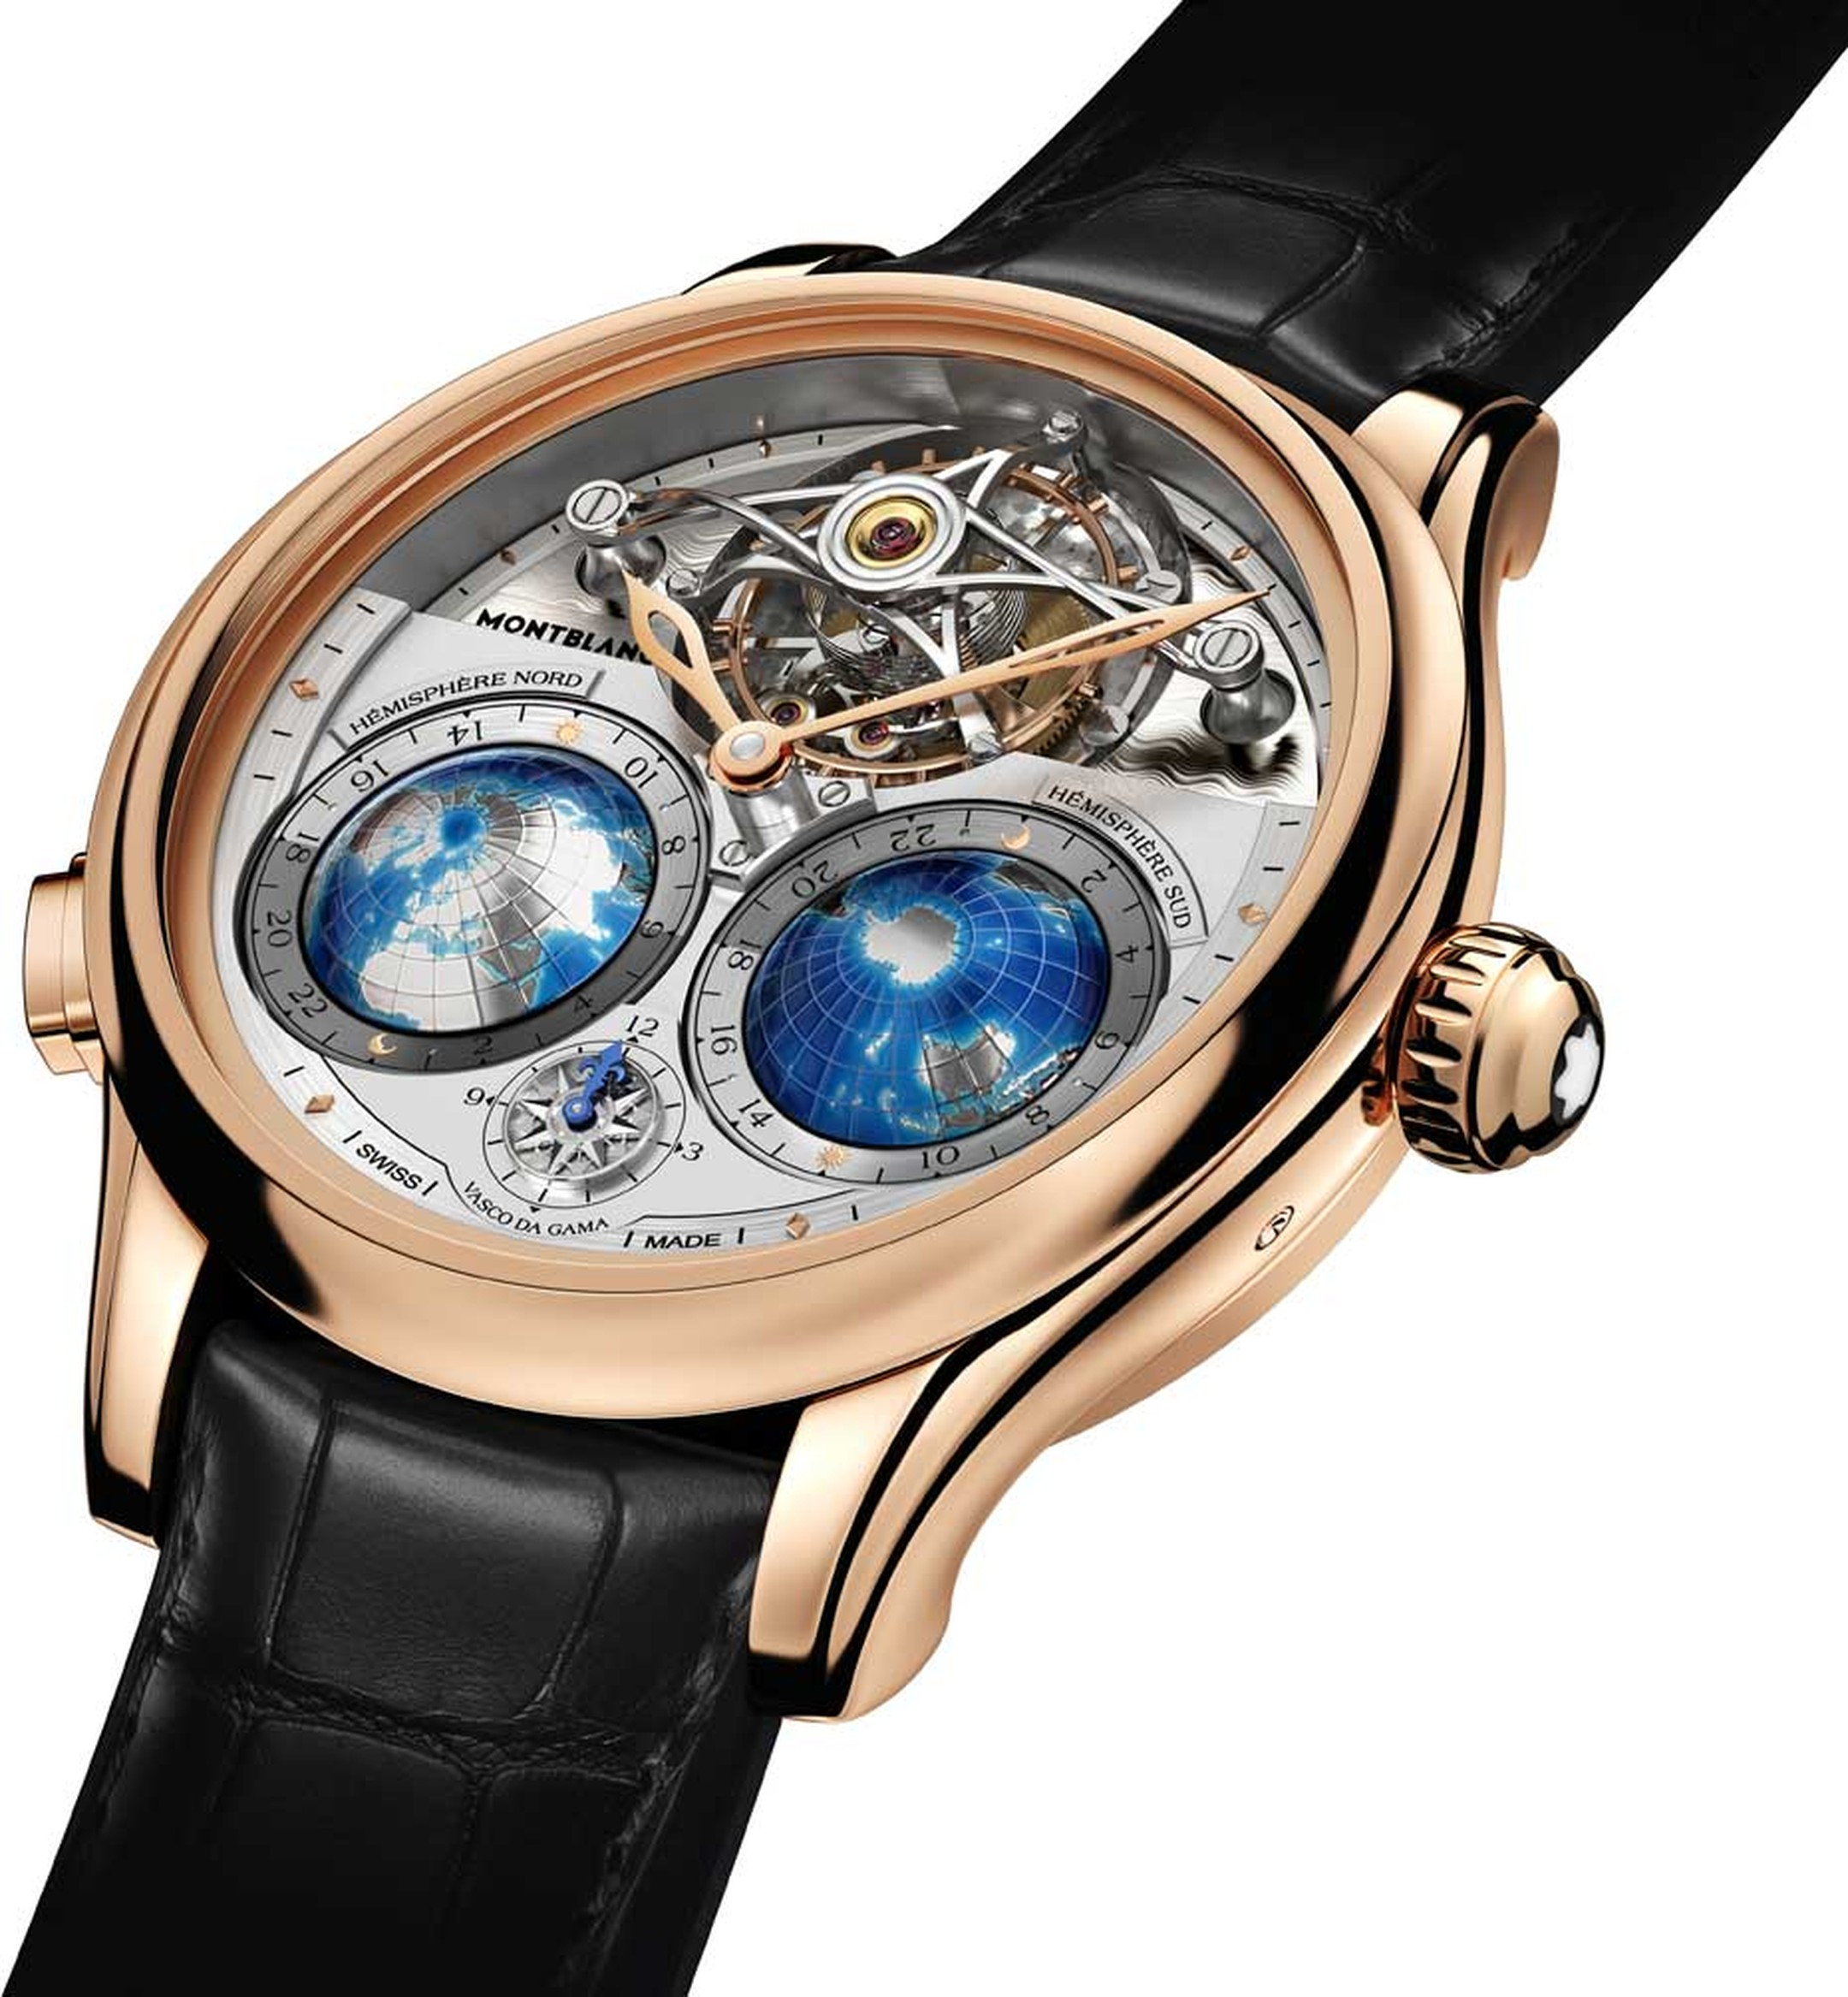 Montblanc Tourbillon Cylindrique Geosphères Vasco da Gama combines a tourbillon with a triple time zone indicator. The global world-time indication is graphically represented by the two blue globes on the dial.